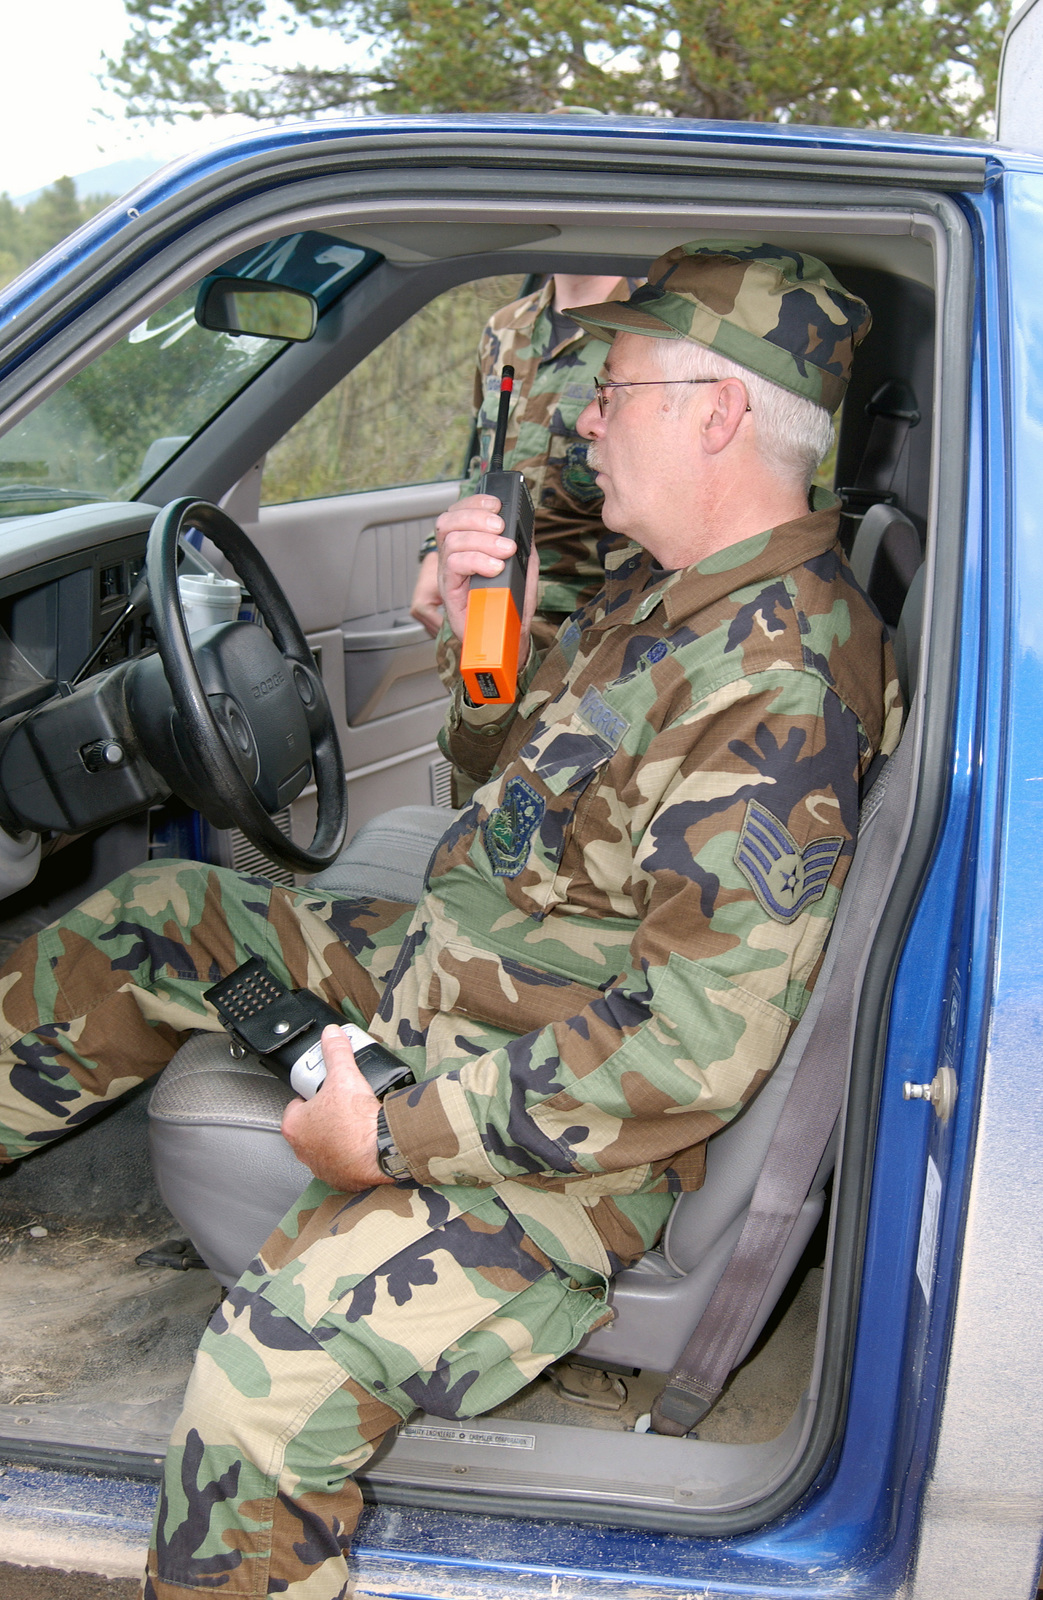 US Air Force (USAF) STAFF Sergeant (SSGT) Charles Heit, 120th Fighter Wing (FW) Montana Air National Guard (MTANG) checks in by radio with security control while assigned to provide security for the property owners living close to wild fires burning near Alice Creek, located in Lincoln, Montana